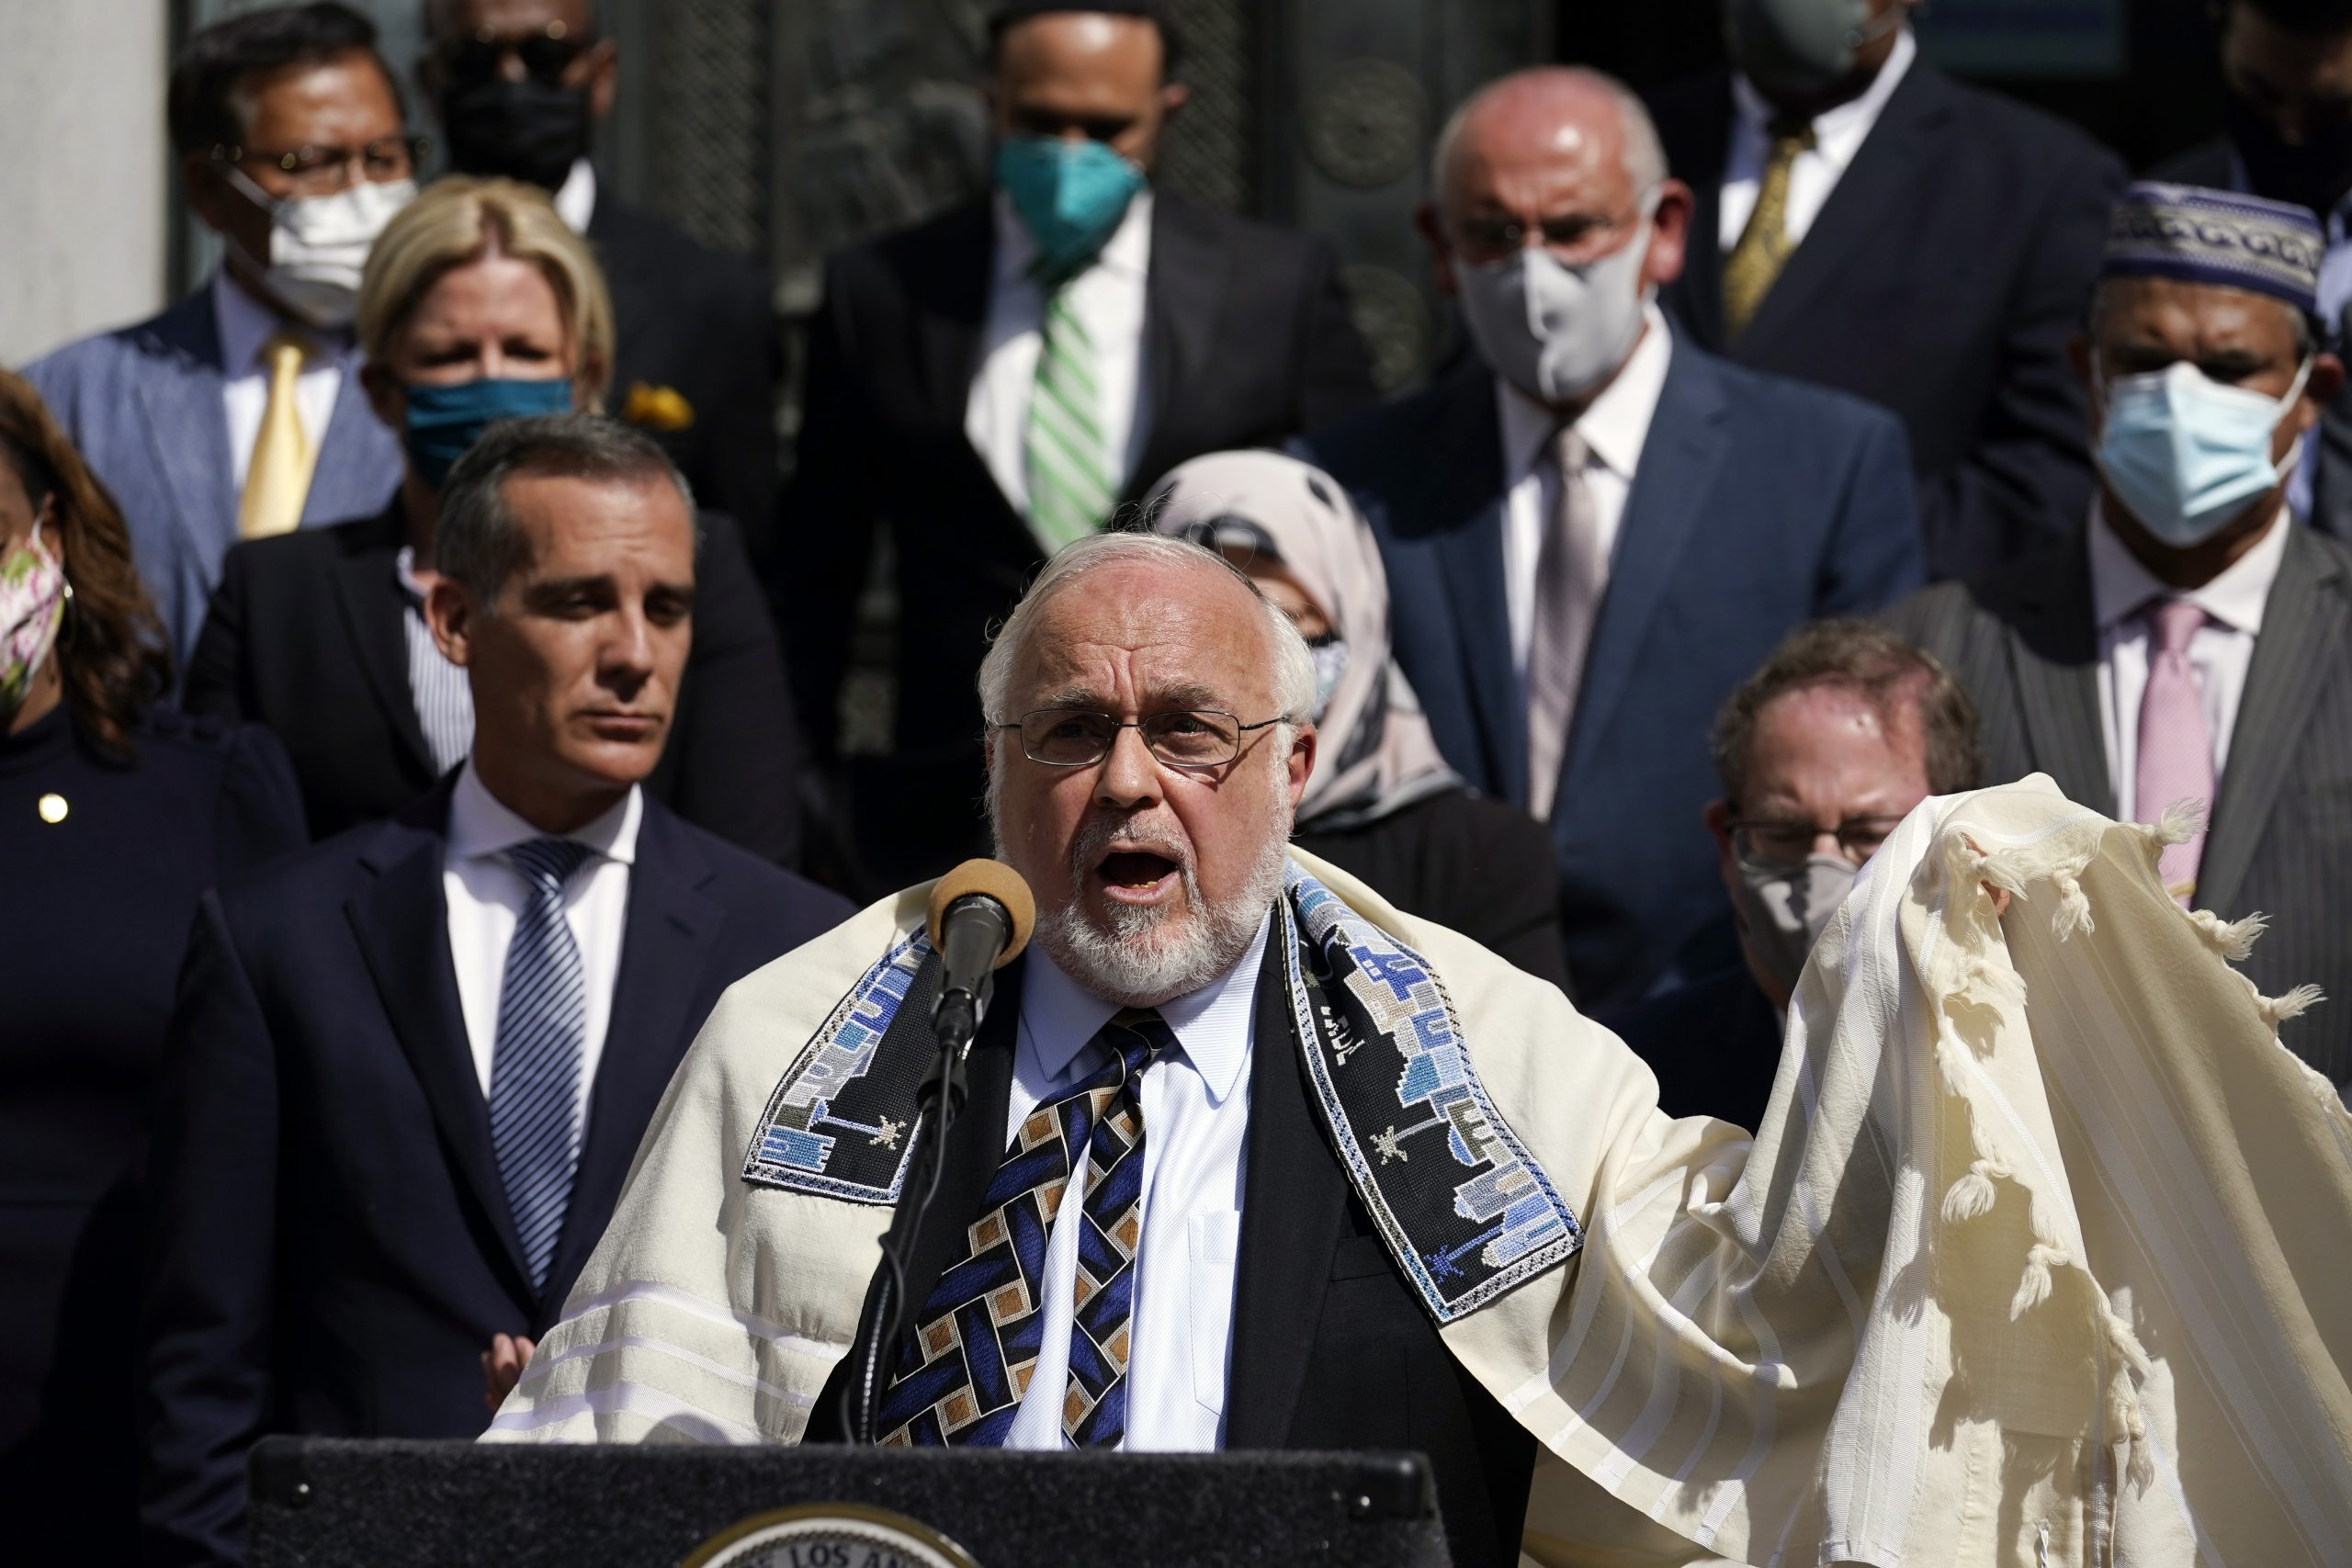 Rabbi Abraham Cooper, center, of the Simon Wiesenthal Center, speaks in front of civic and faith leaders outside City Hall, Thursday, May 20, 2021, in Los Angeles. Faith and community leaders in Los Angeles called for peace, tolerance and unity in the wake of violence in the city that is being investigated as potential hate crimes. (AP Photo/Marcio Jose Sanchez)